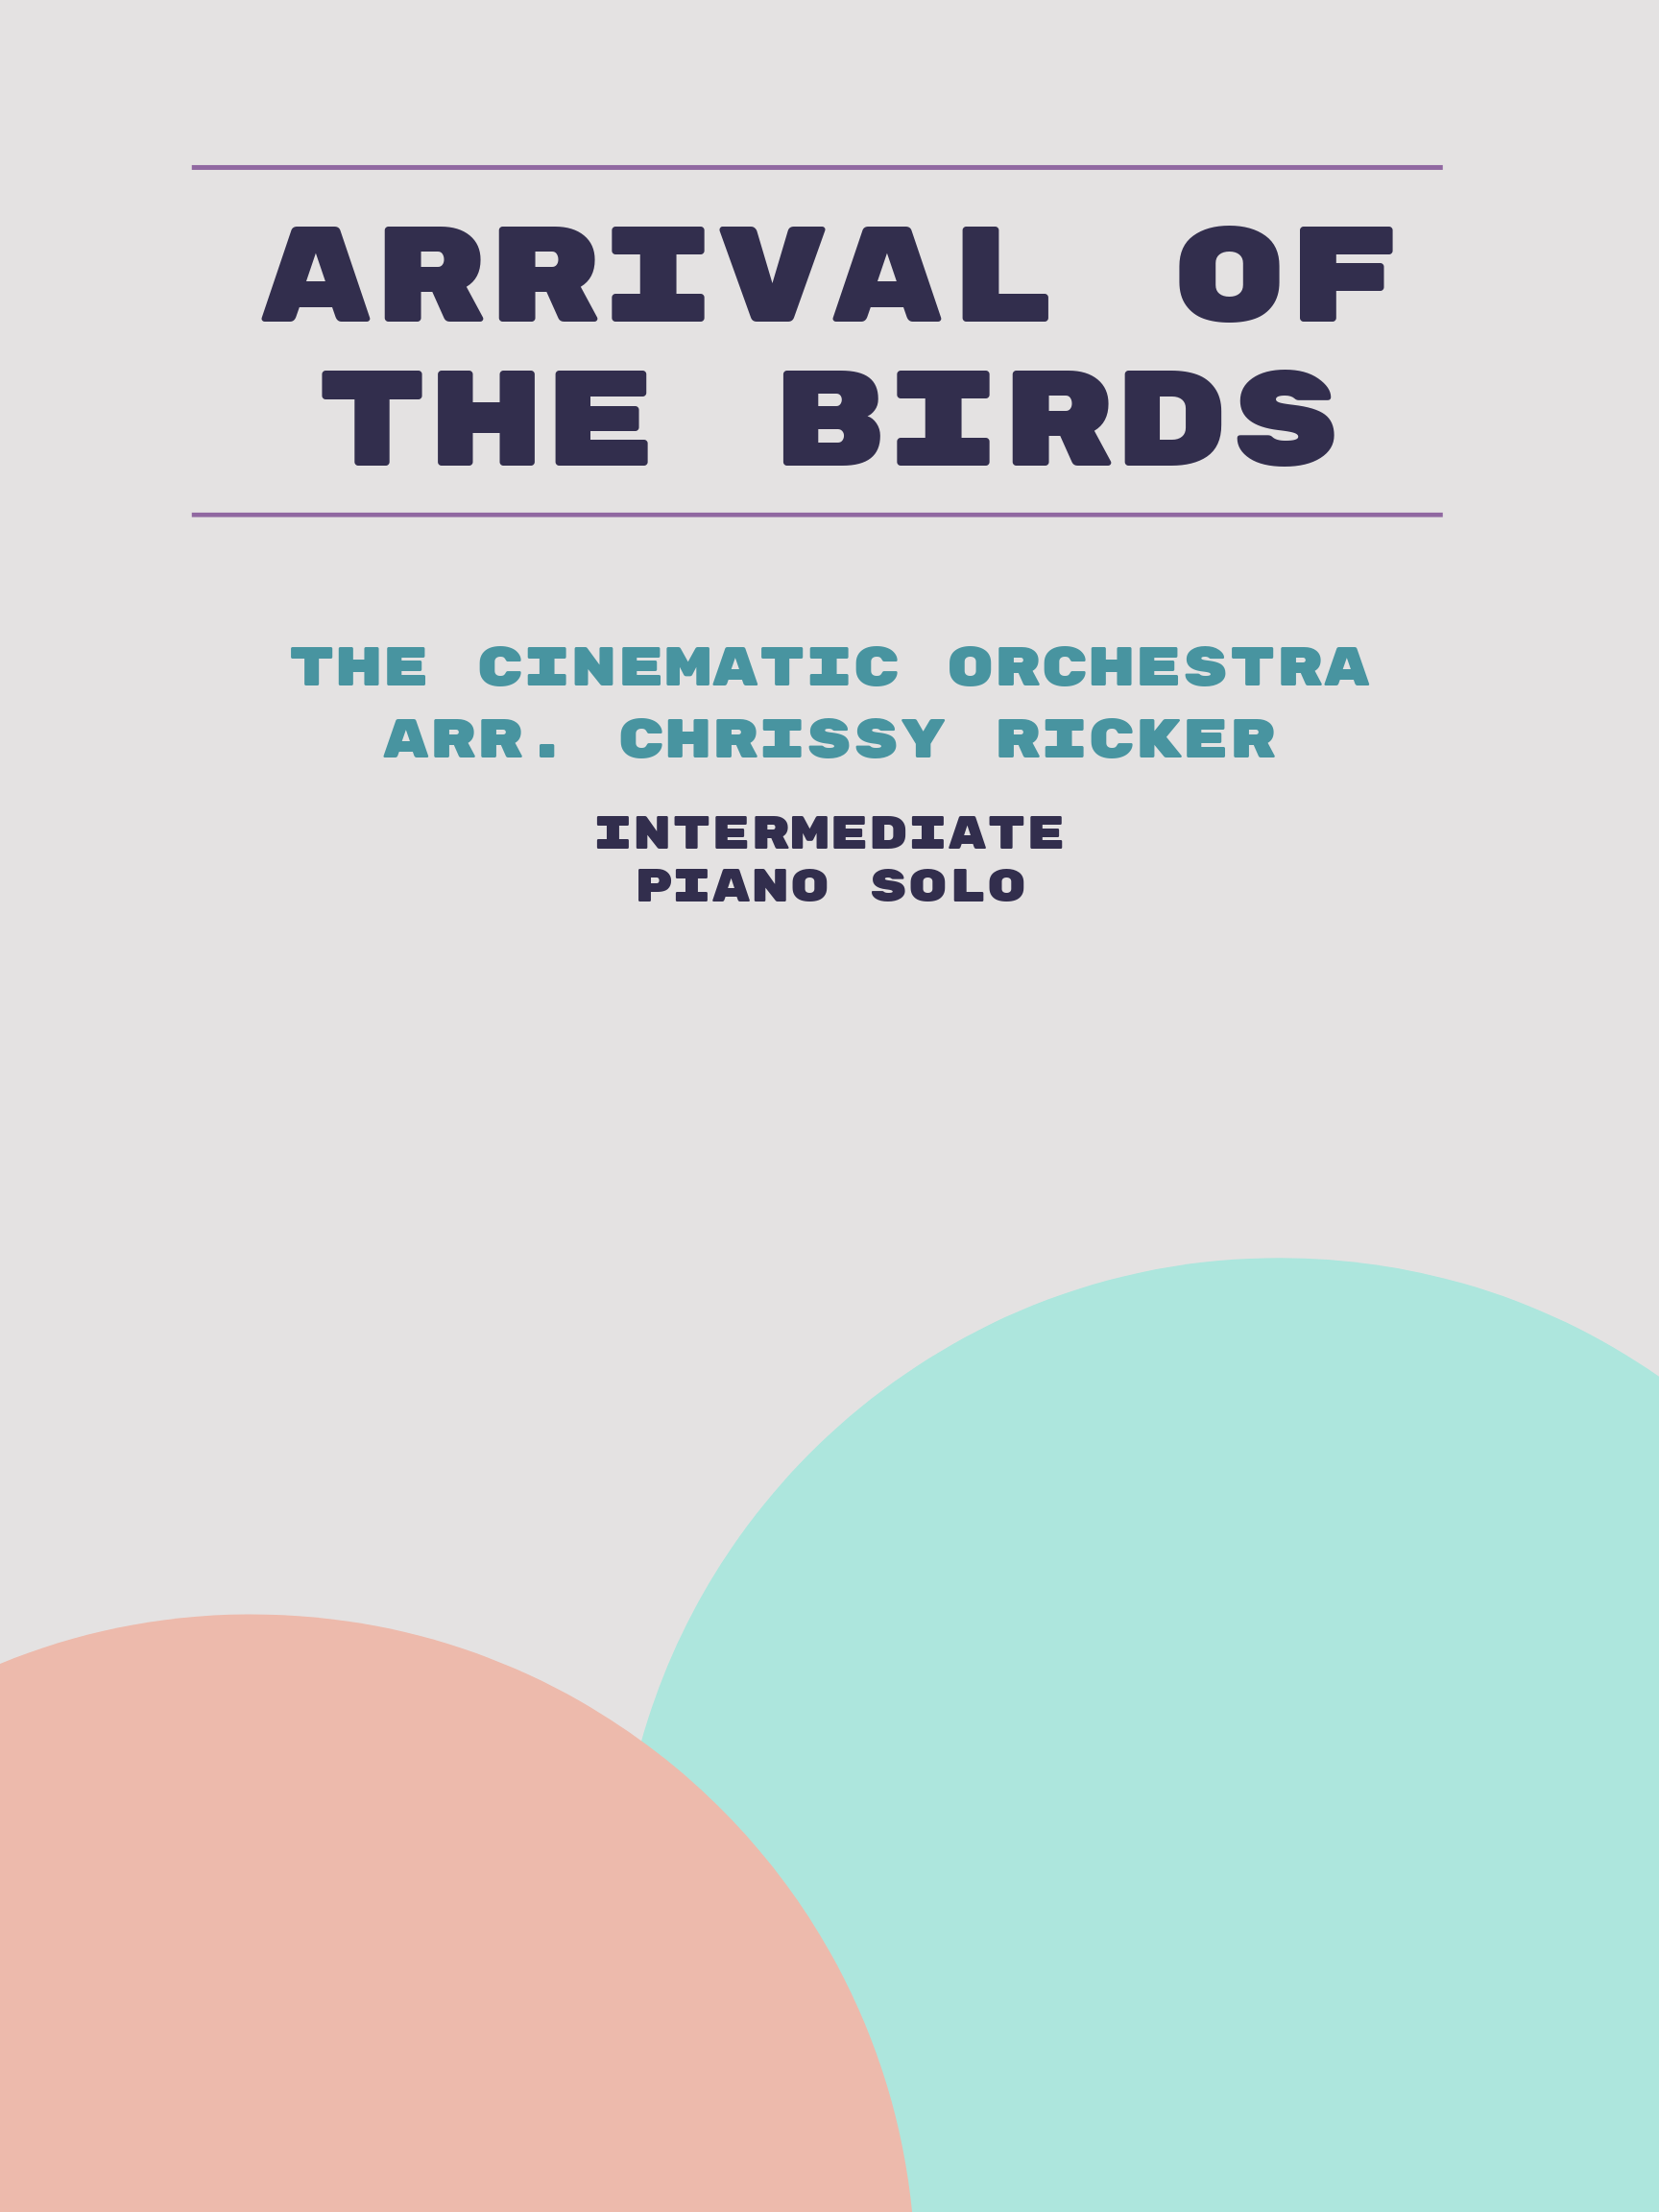 Arrival of the Birds by The Cinematic Orchestra